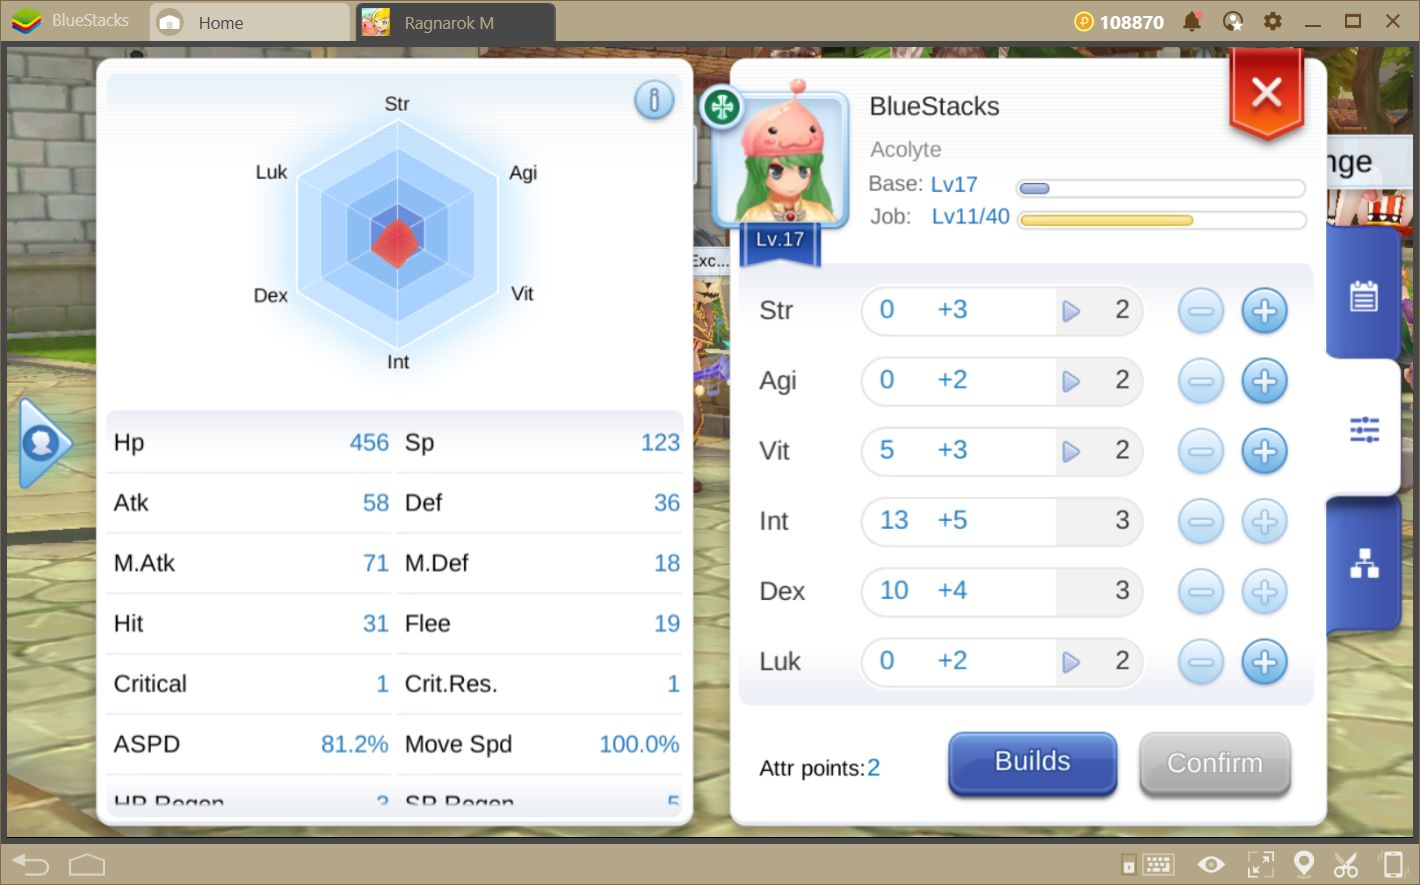 The Best Speed-Leveling Methods for Ragnarok M: Eternal Love